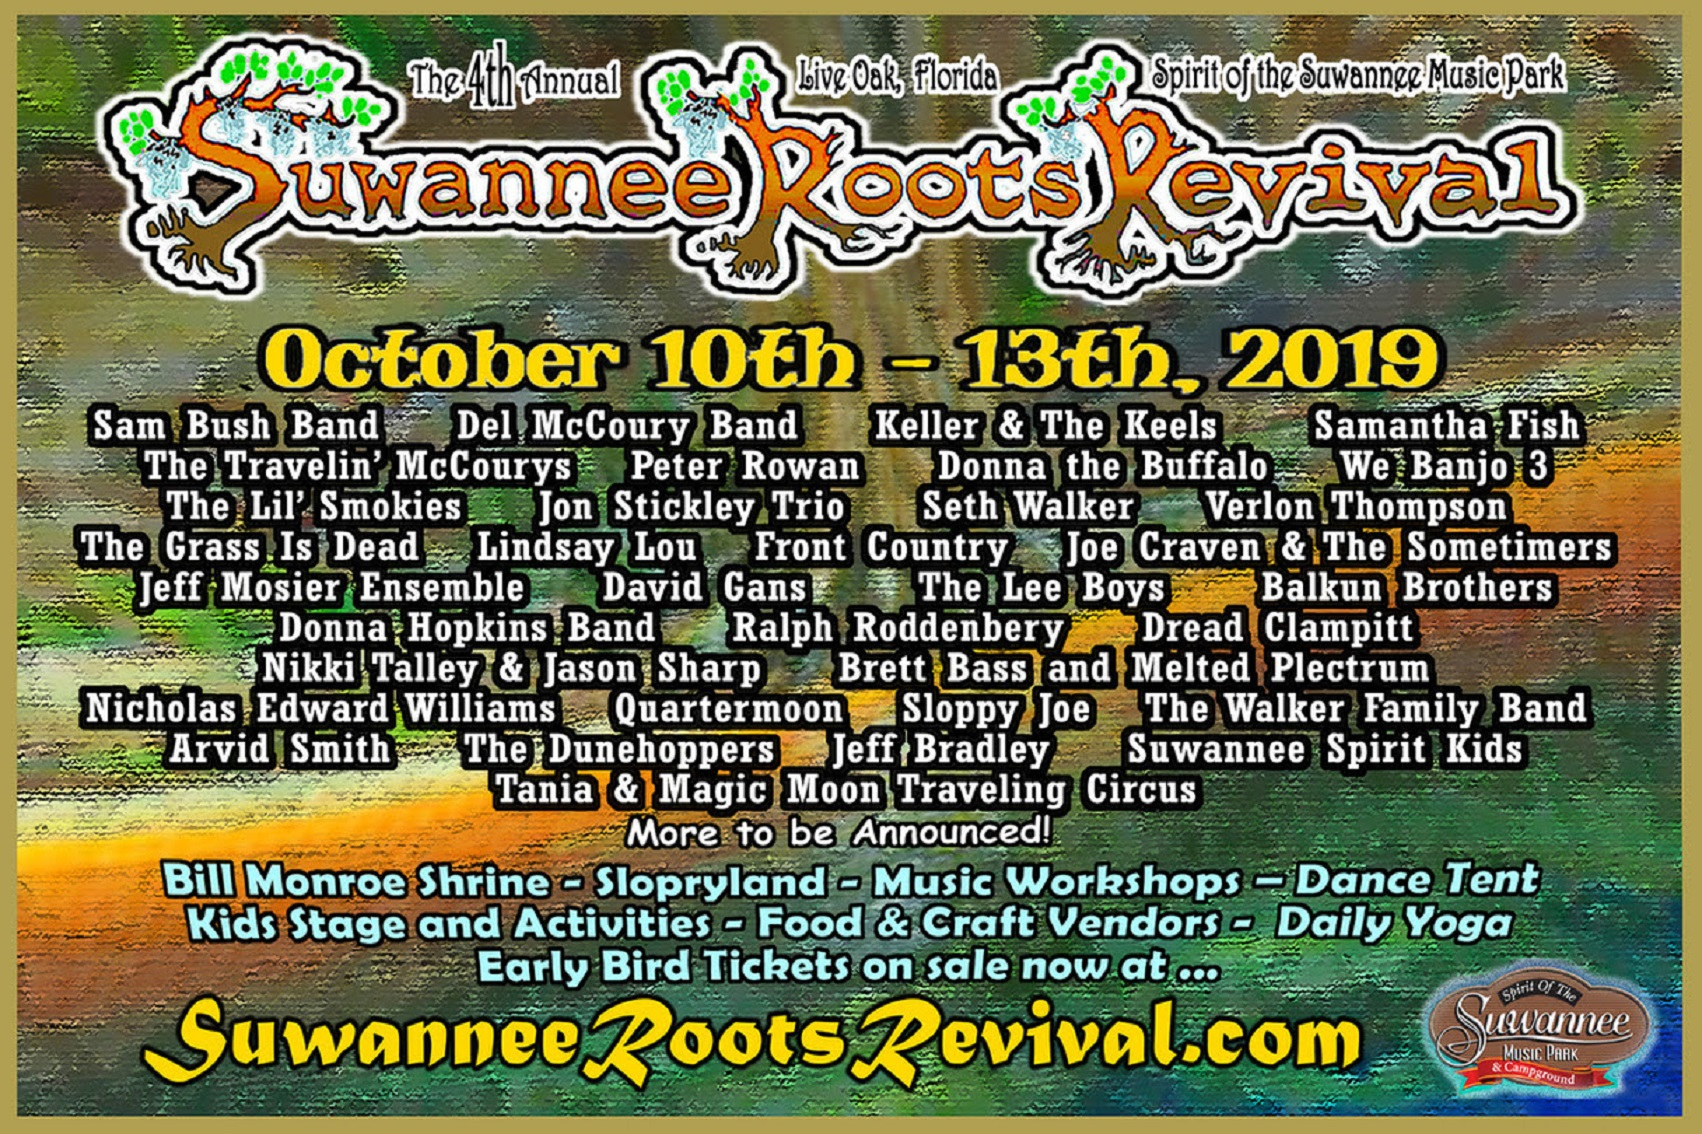 Suwannee Roots Revival Oct 10-13 w/ Sam Bush, Del McCoury, Keller & The Keels